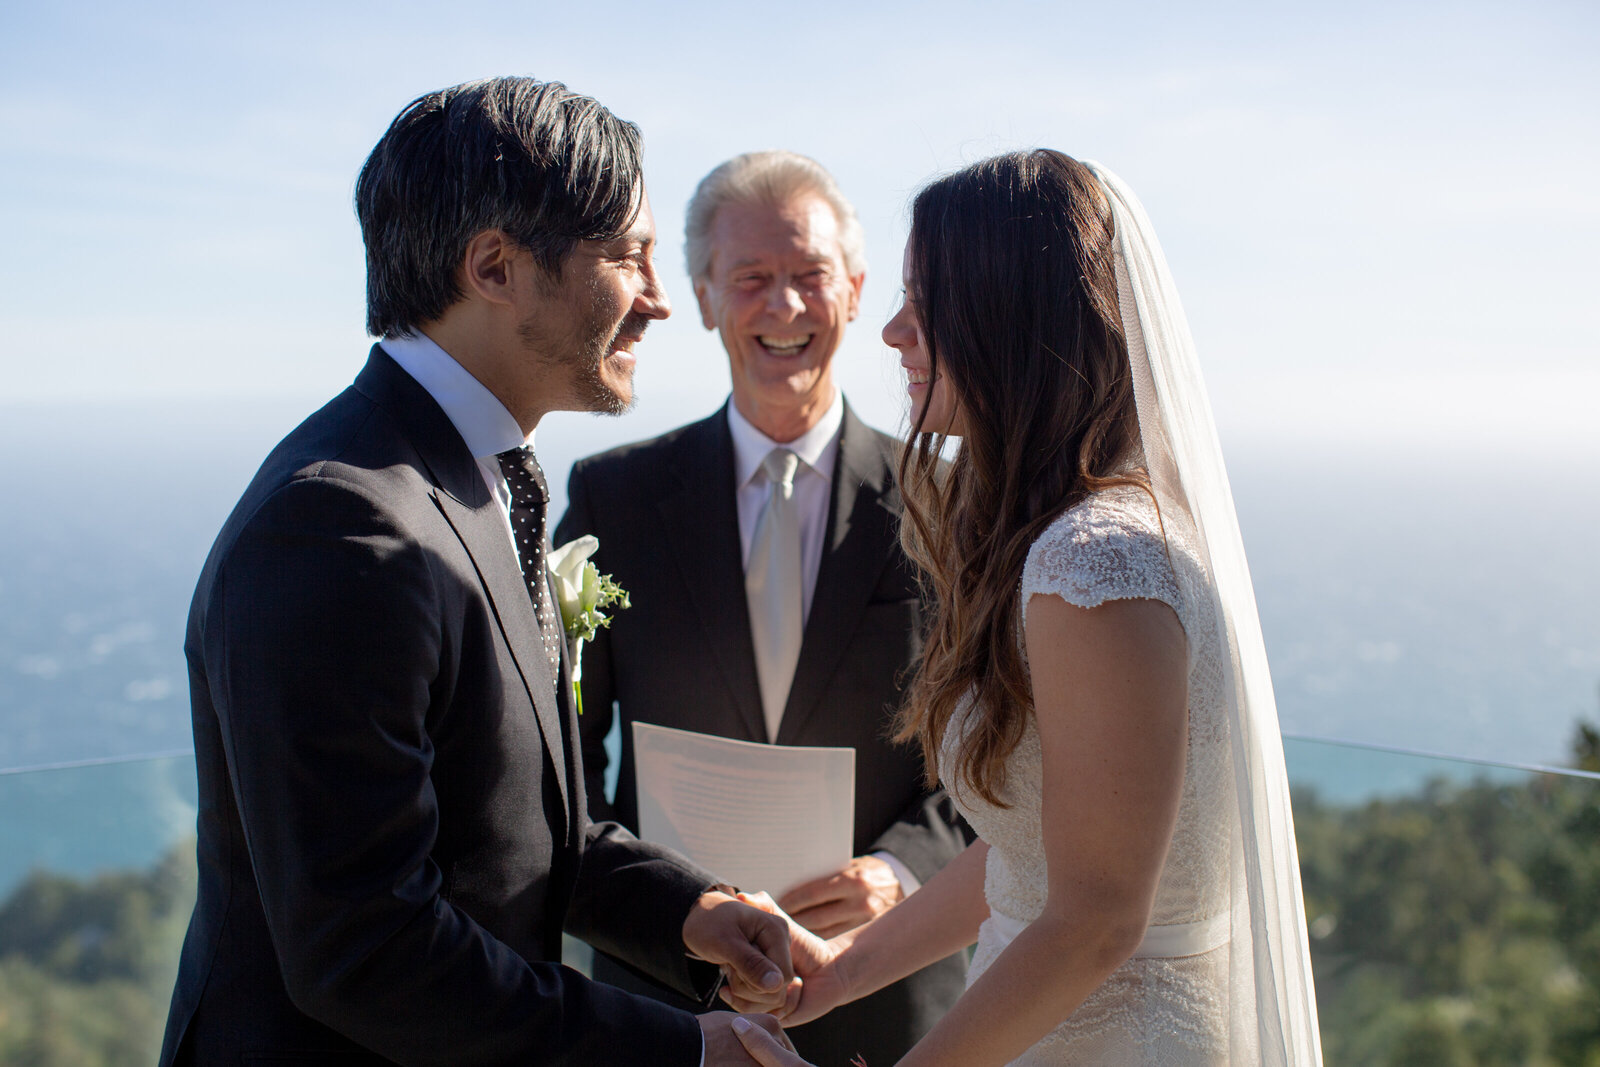 larissa-cleveland-elope-eleopement-intimate-wedding-photographer-san-francisco-napa-carmel-048